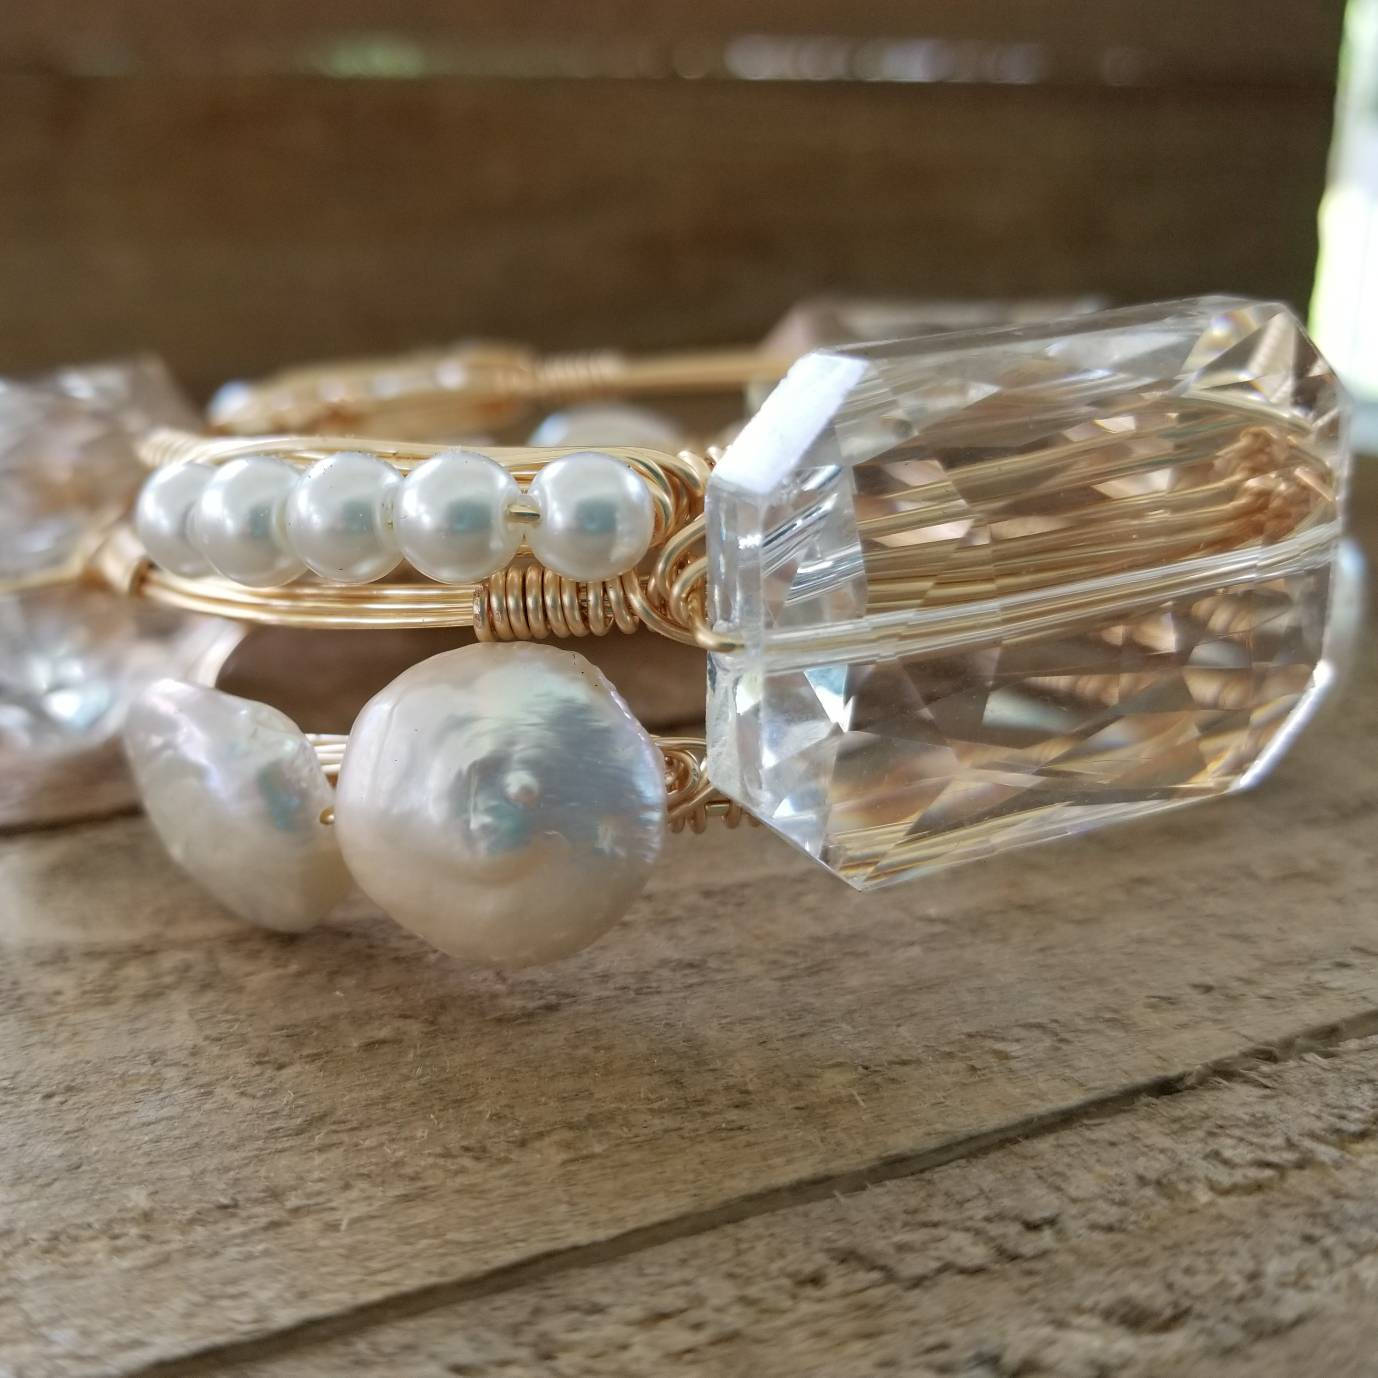 Crystal and keshi pearls set of 3 Bourbon and Bowetie inspired bangle bracelets-bride bracelet-bangles for bridesmaids-wedding jewelry